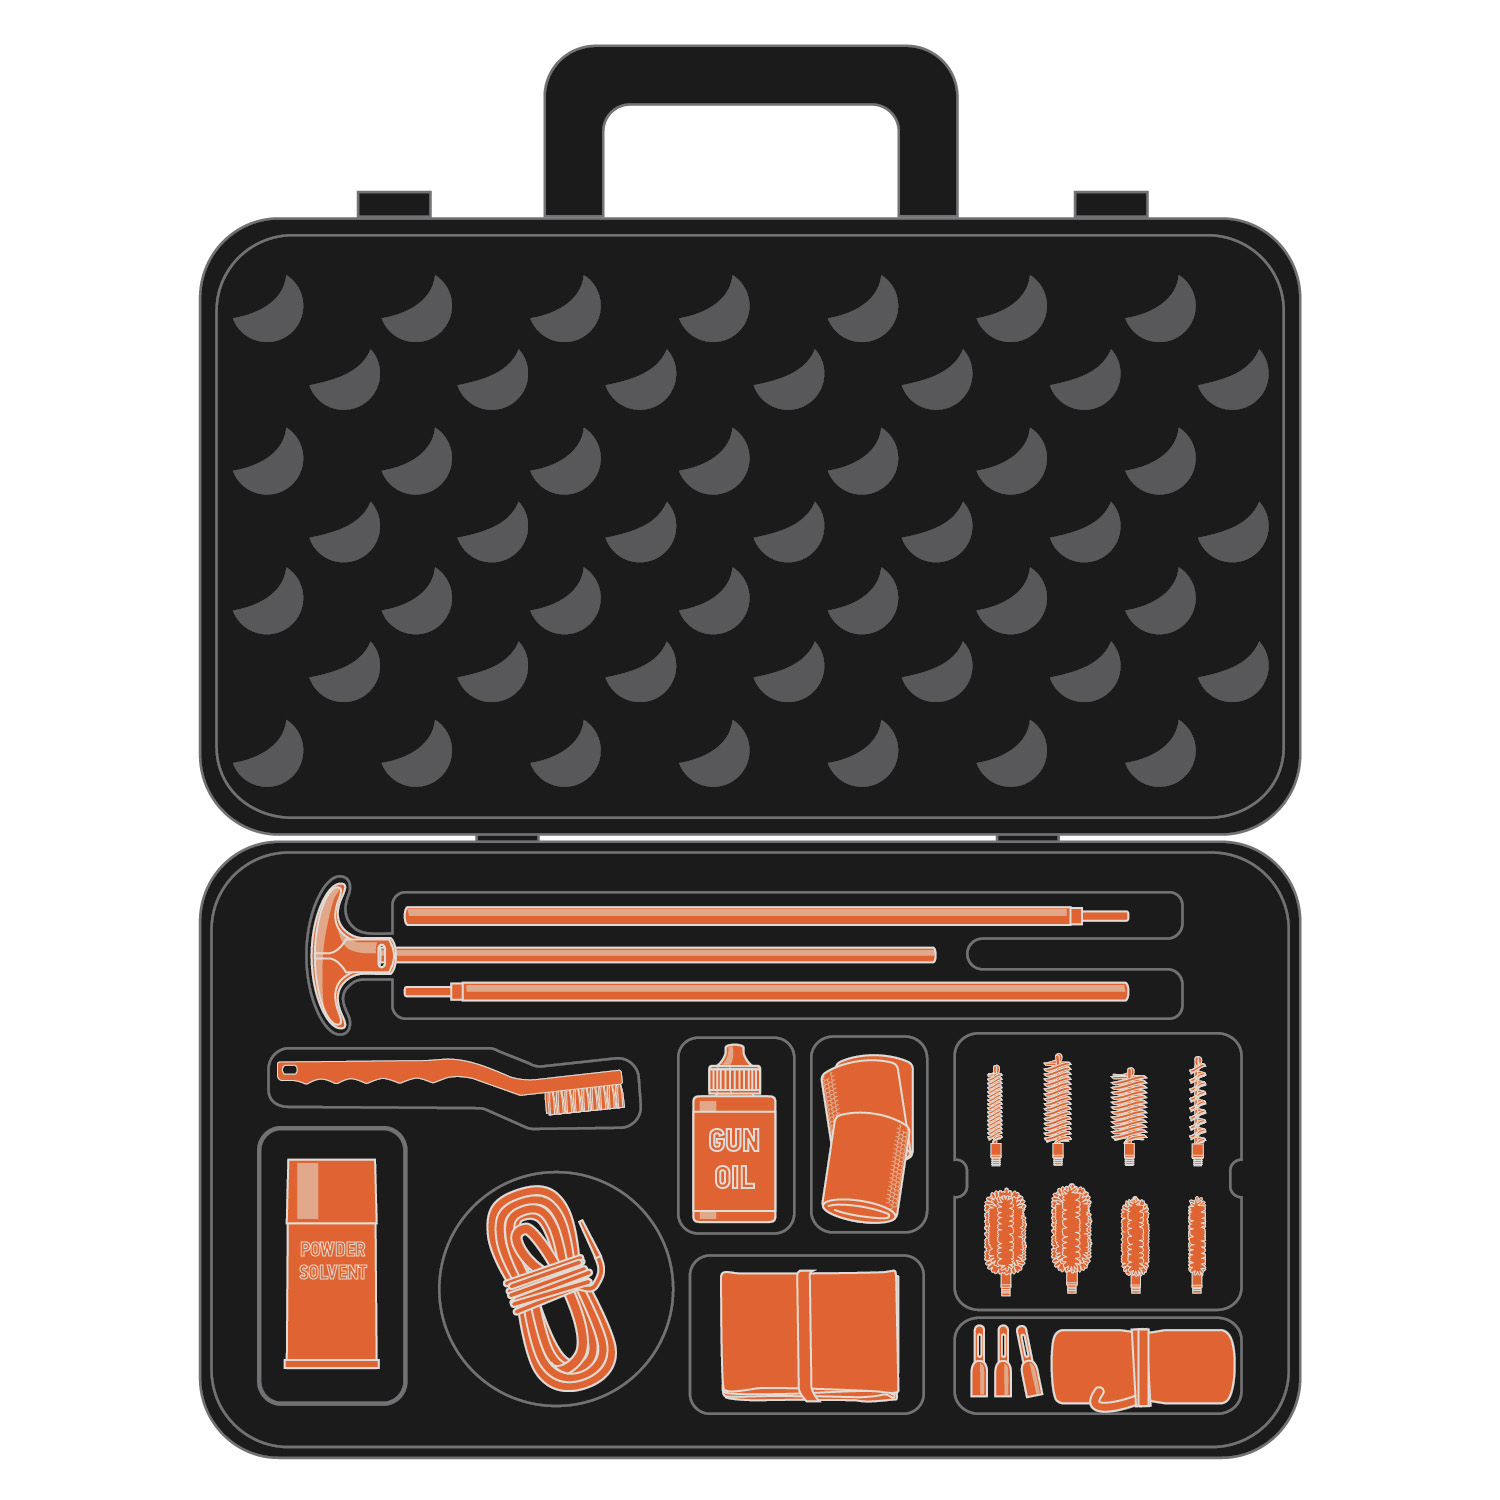 Illustration of a complete cleaning kit with all components highlighted in orange.